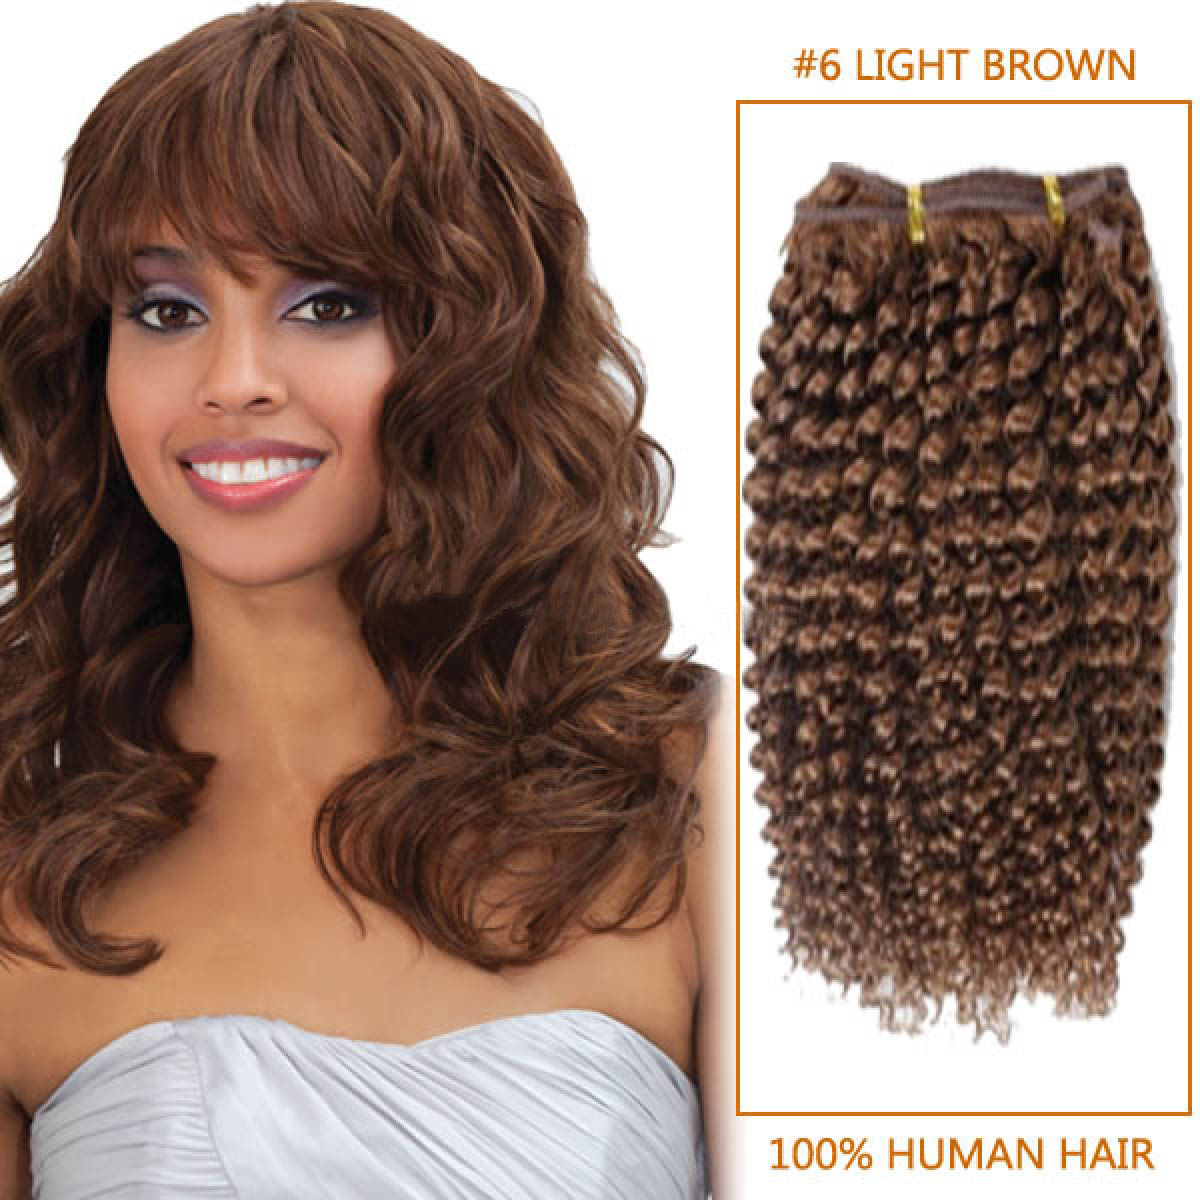 24 Inch 6 Light Brown Afro Curl Indian Remy Hair Wefts